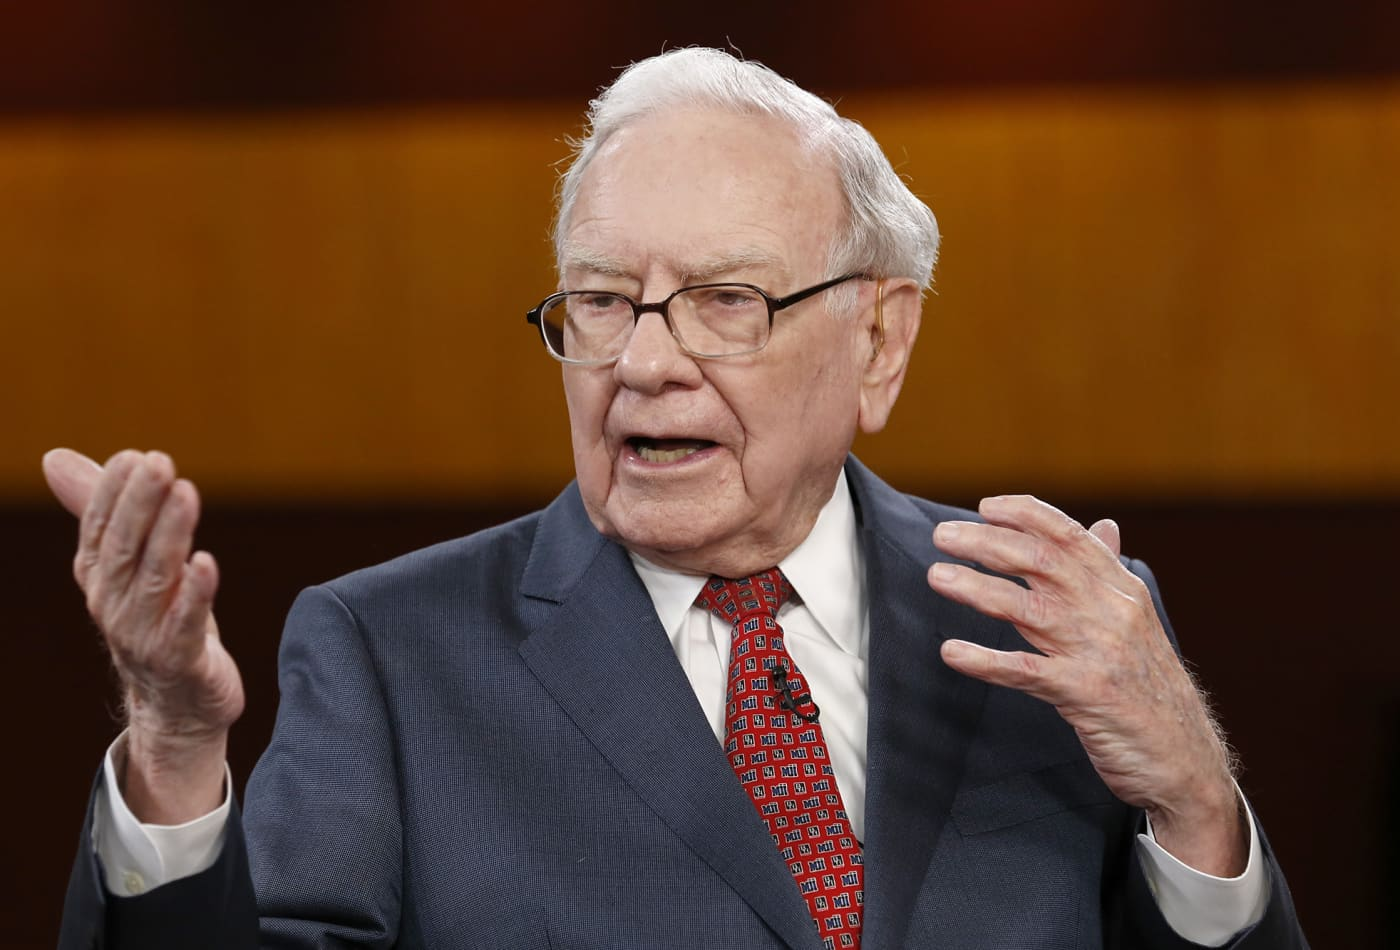 Warren Buffett on why rich people, government should help the poor